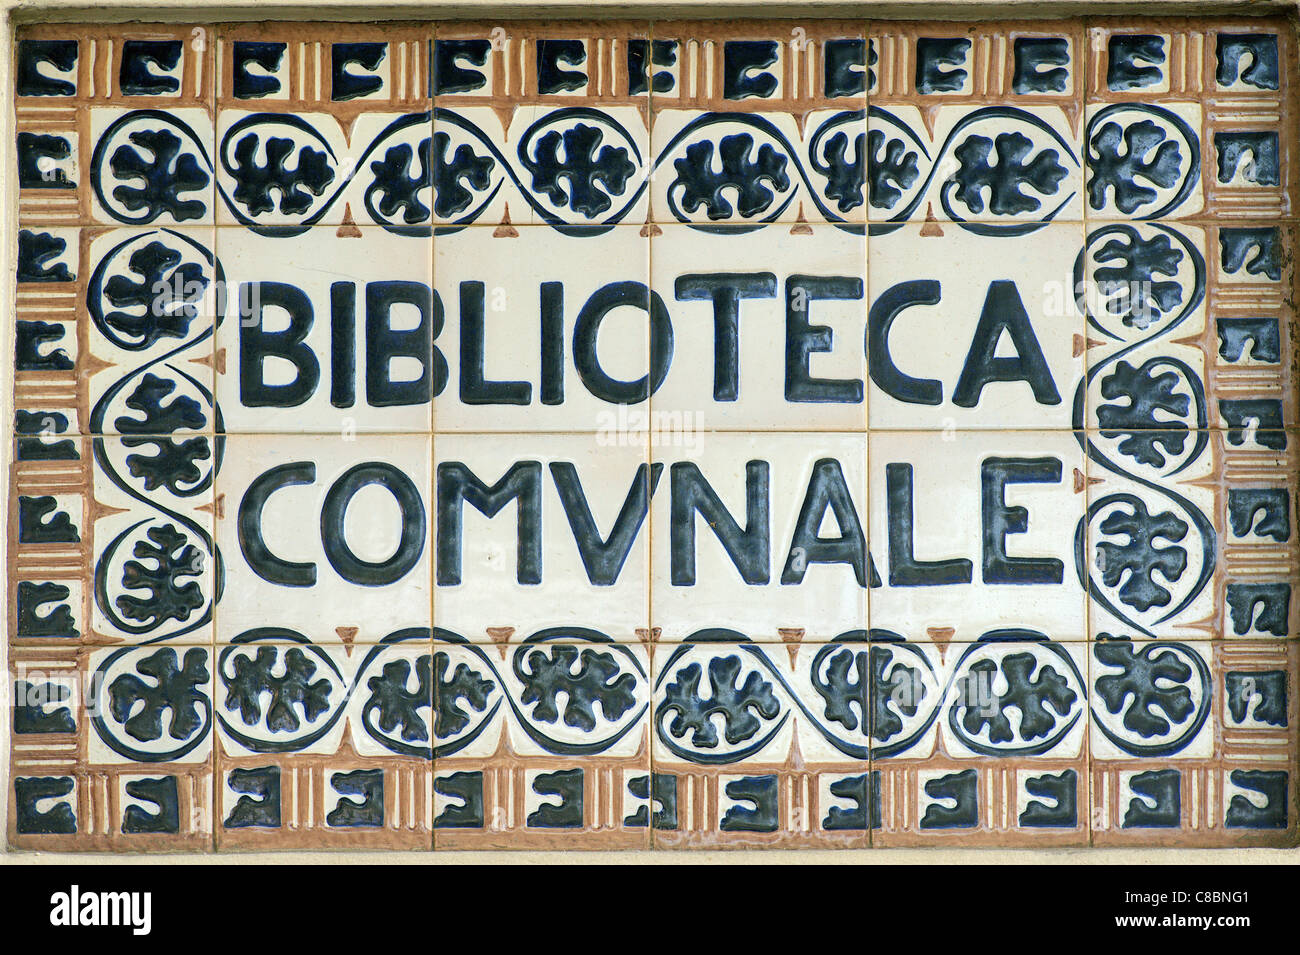 Biblioteca Comunale Faenza Italy communal library name made of tiles - Stock Image